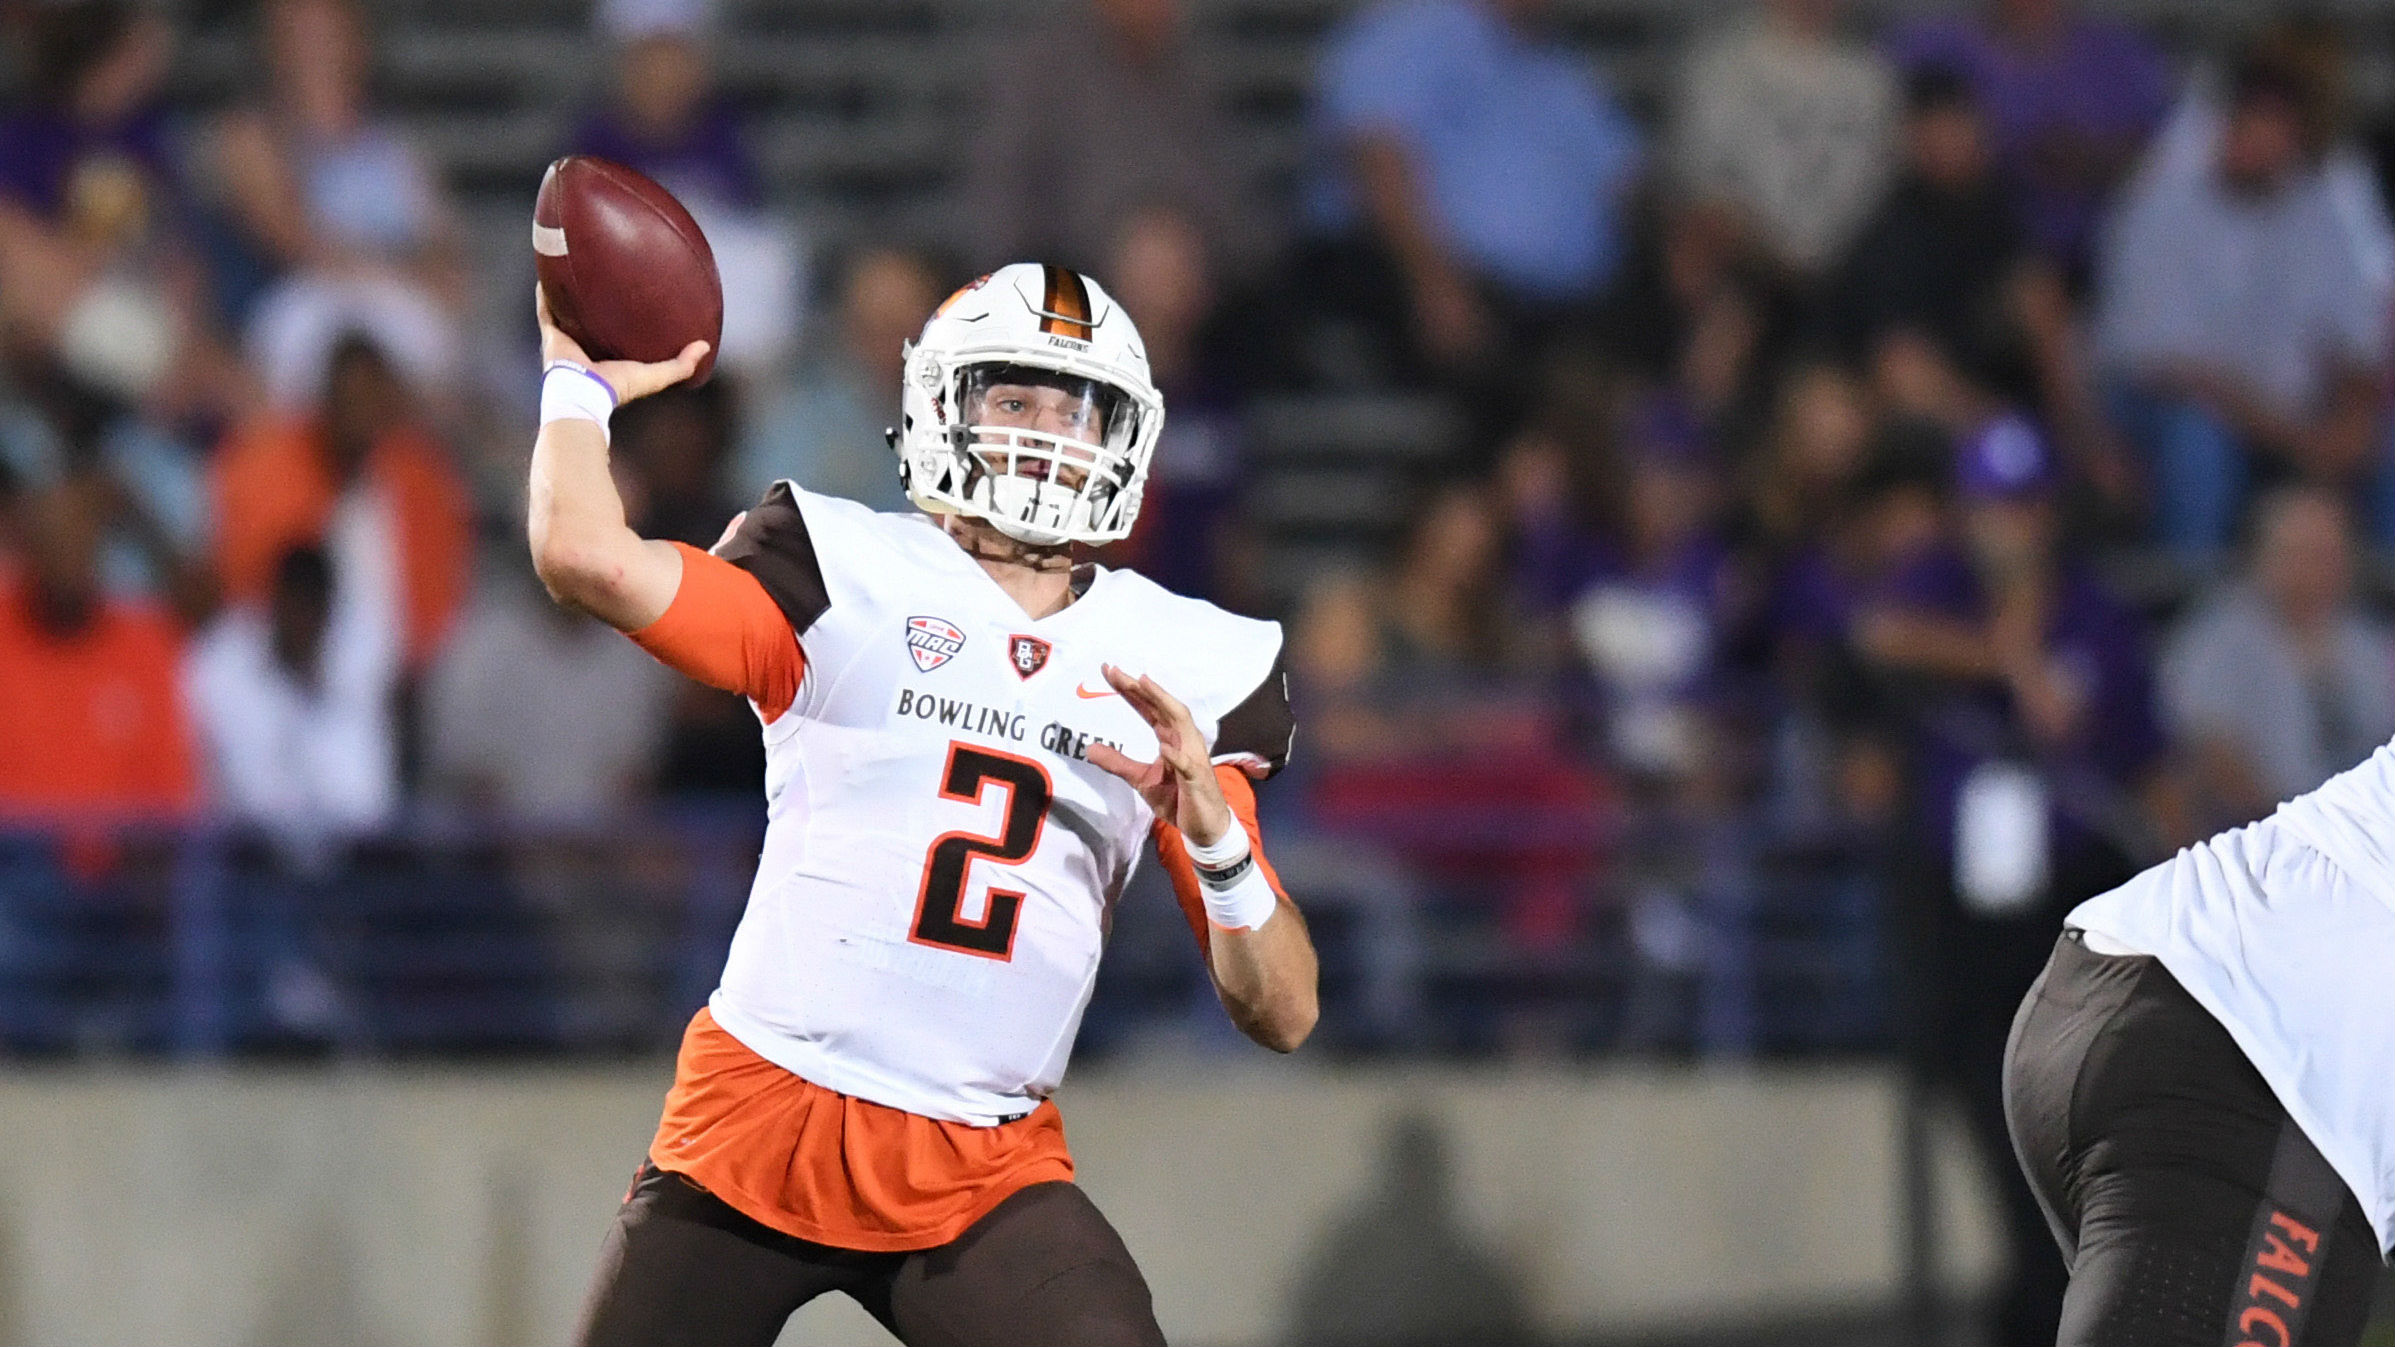 Bowling Green 2018 Betting Preview: Experienced Falcons A Good Over Bet article feature image